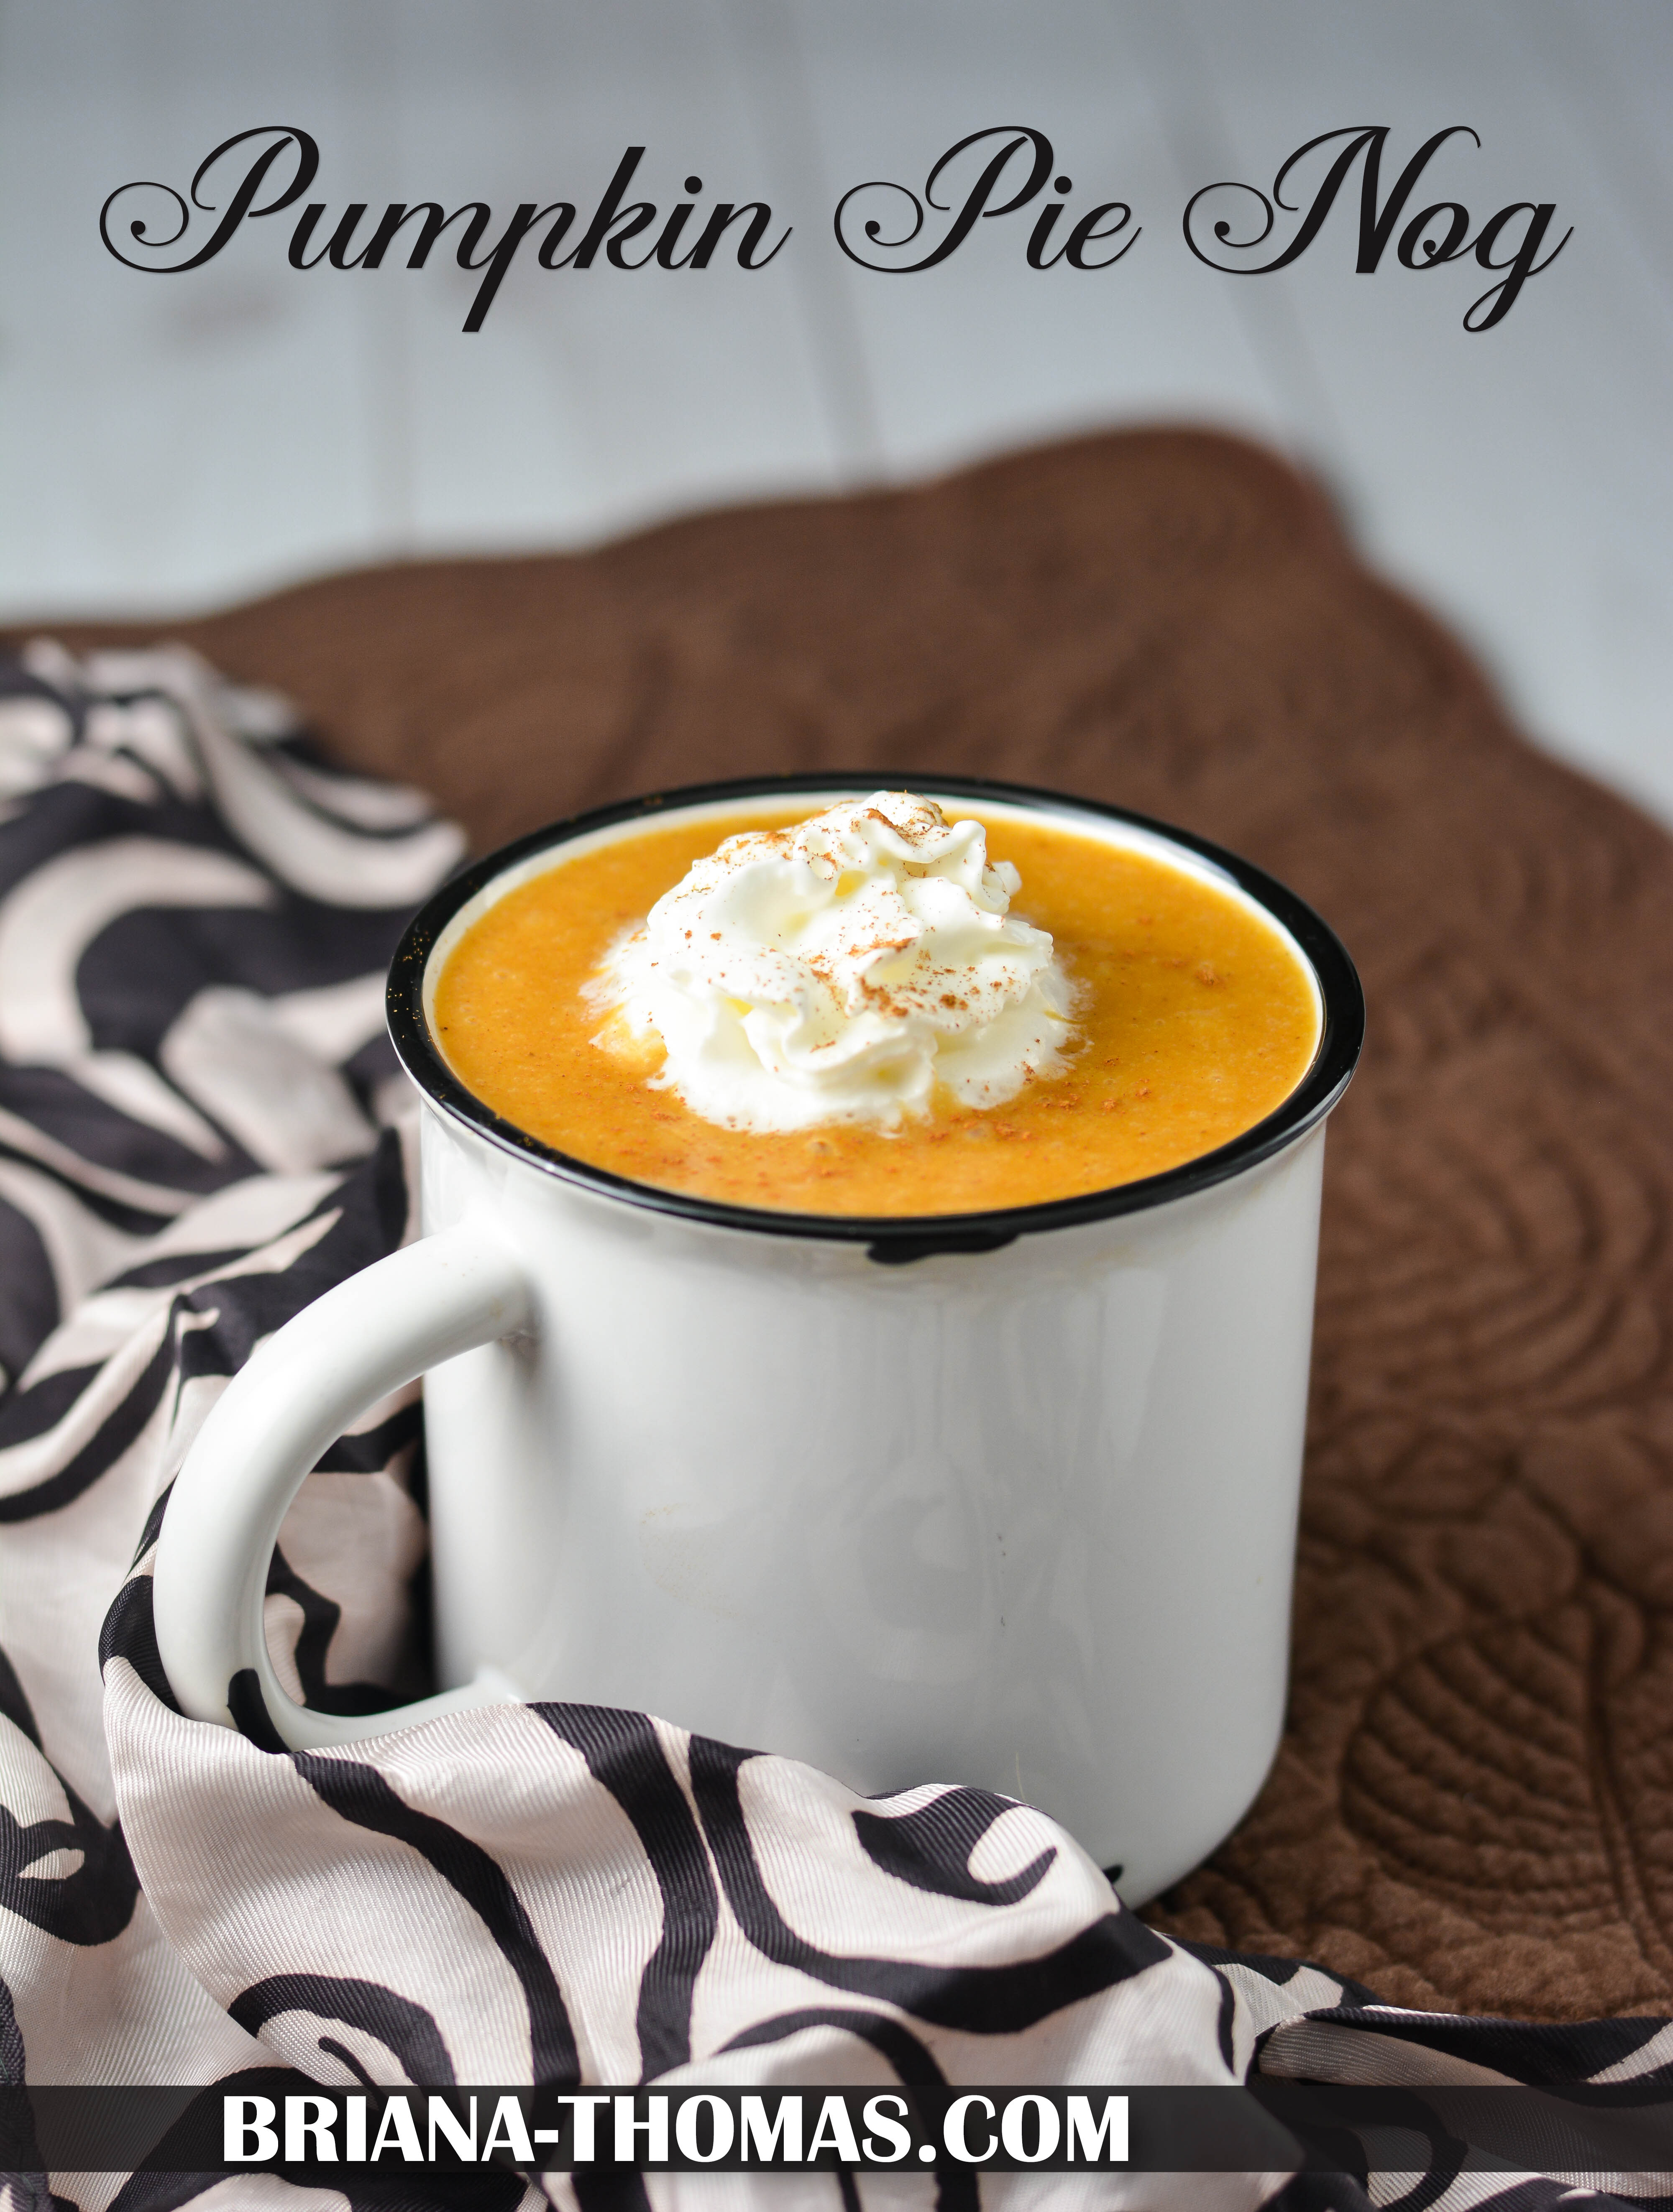 This Pumpkin Pie Nog tastes like the inside of a pumpkin pie! THM Fuel Pull, low carb, low fat, no sugar added, gluten/egg/dairy free with nut free option